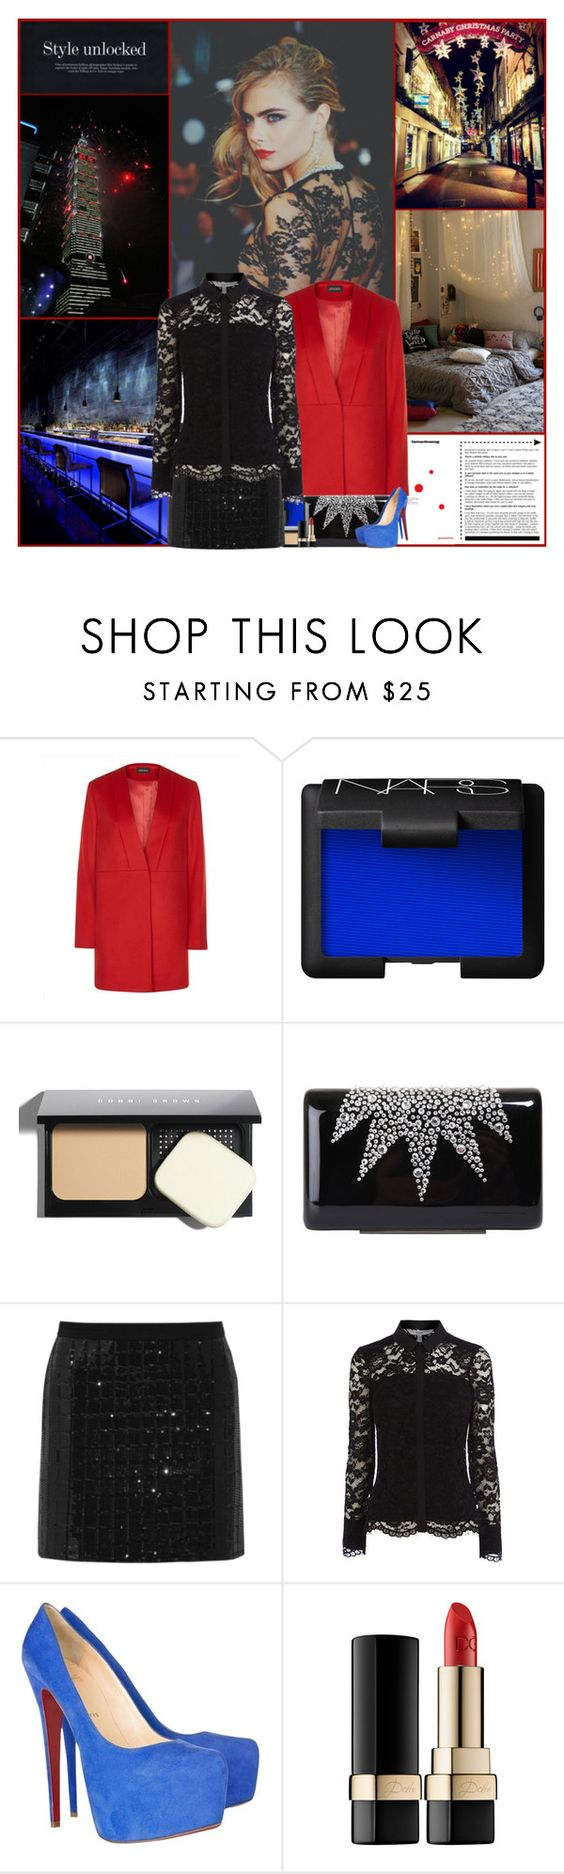 """Style Unlocked"" by kittyfantastica ❤ liked on Polyvore featuring Jaeger, NARS Cosmetics, Bobbi Brown Cosmetics, Wilbur & Gussie, Karl Lagerfeld, Coast, Christian Louboutin and Dolce&Gabbana"